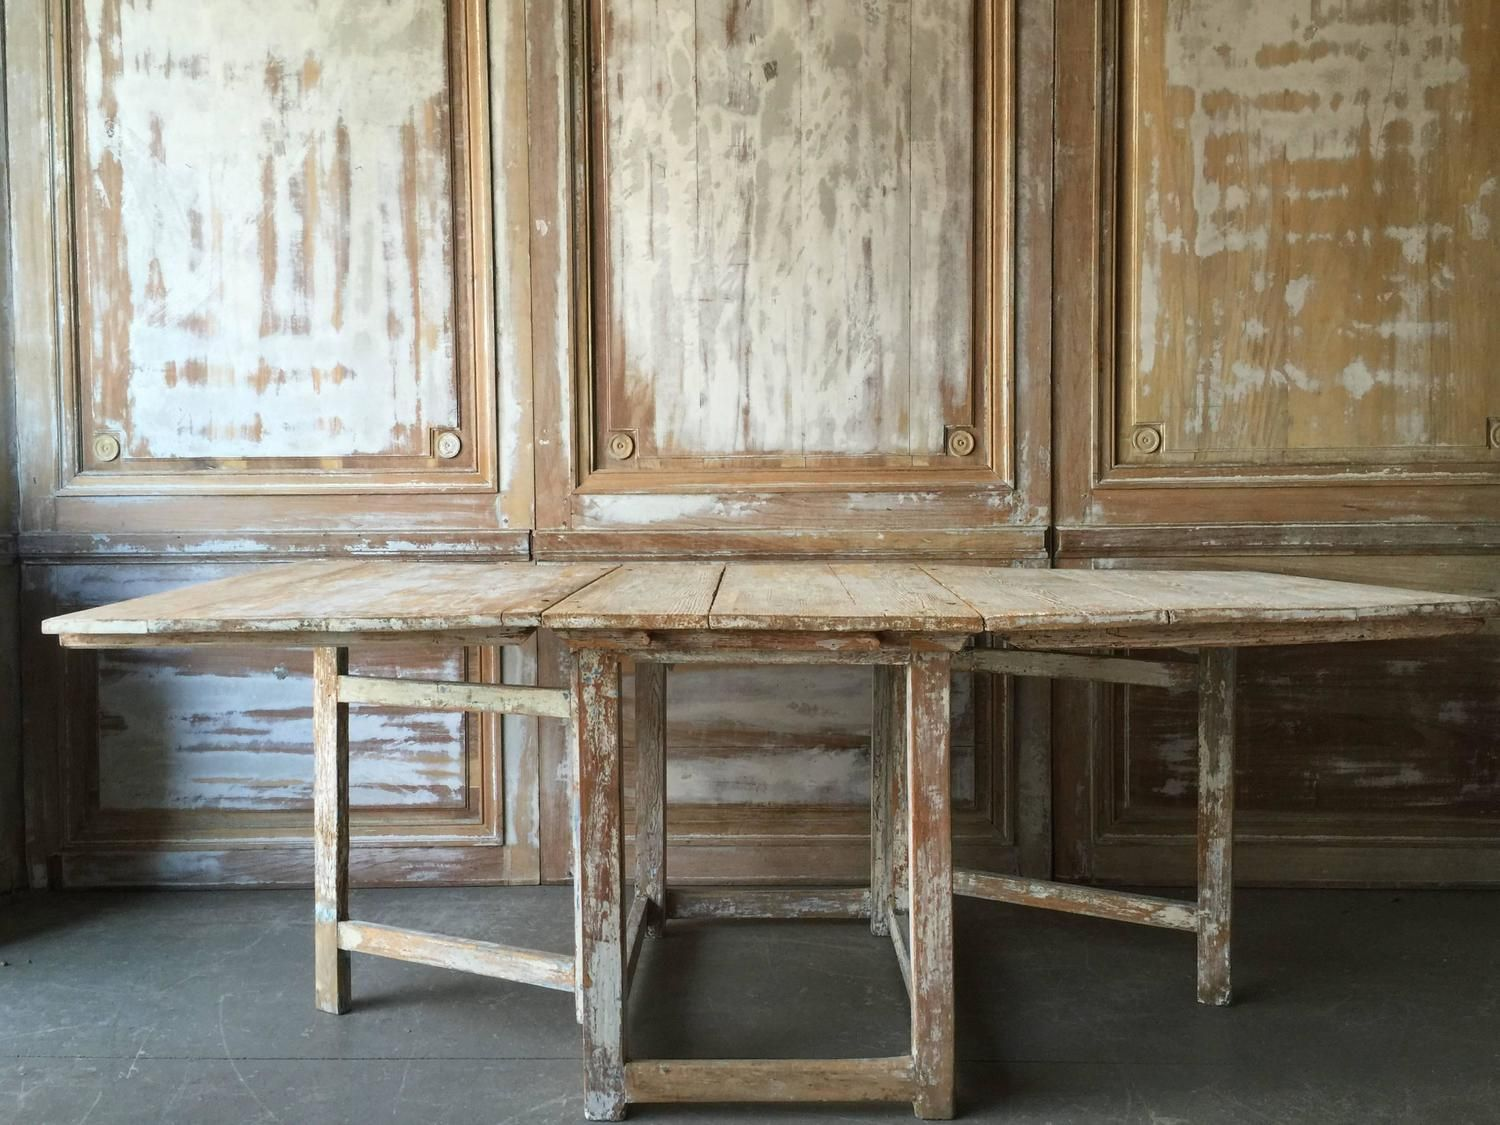 Swedish gateleg table ironwork Pinterest